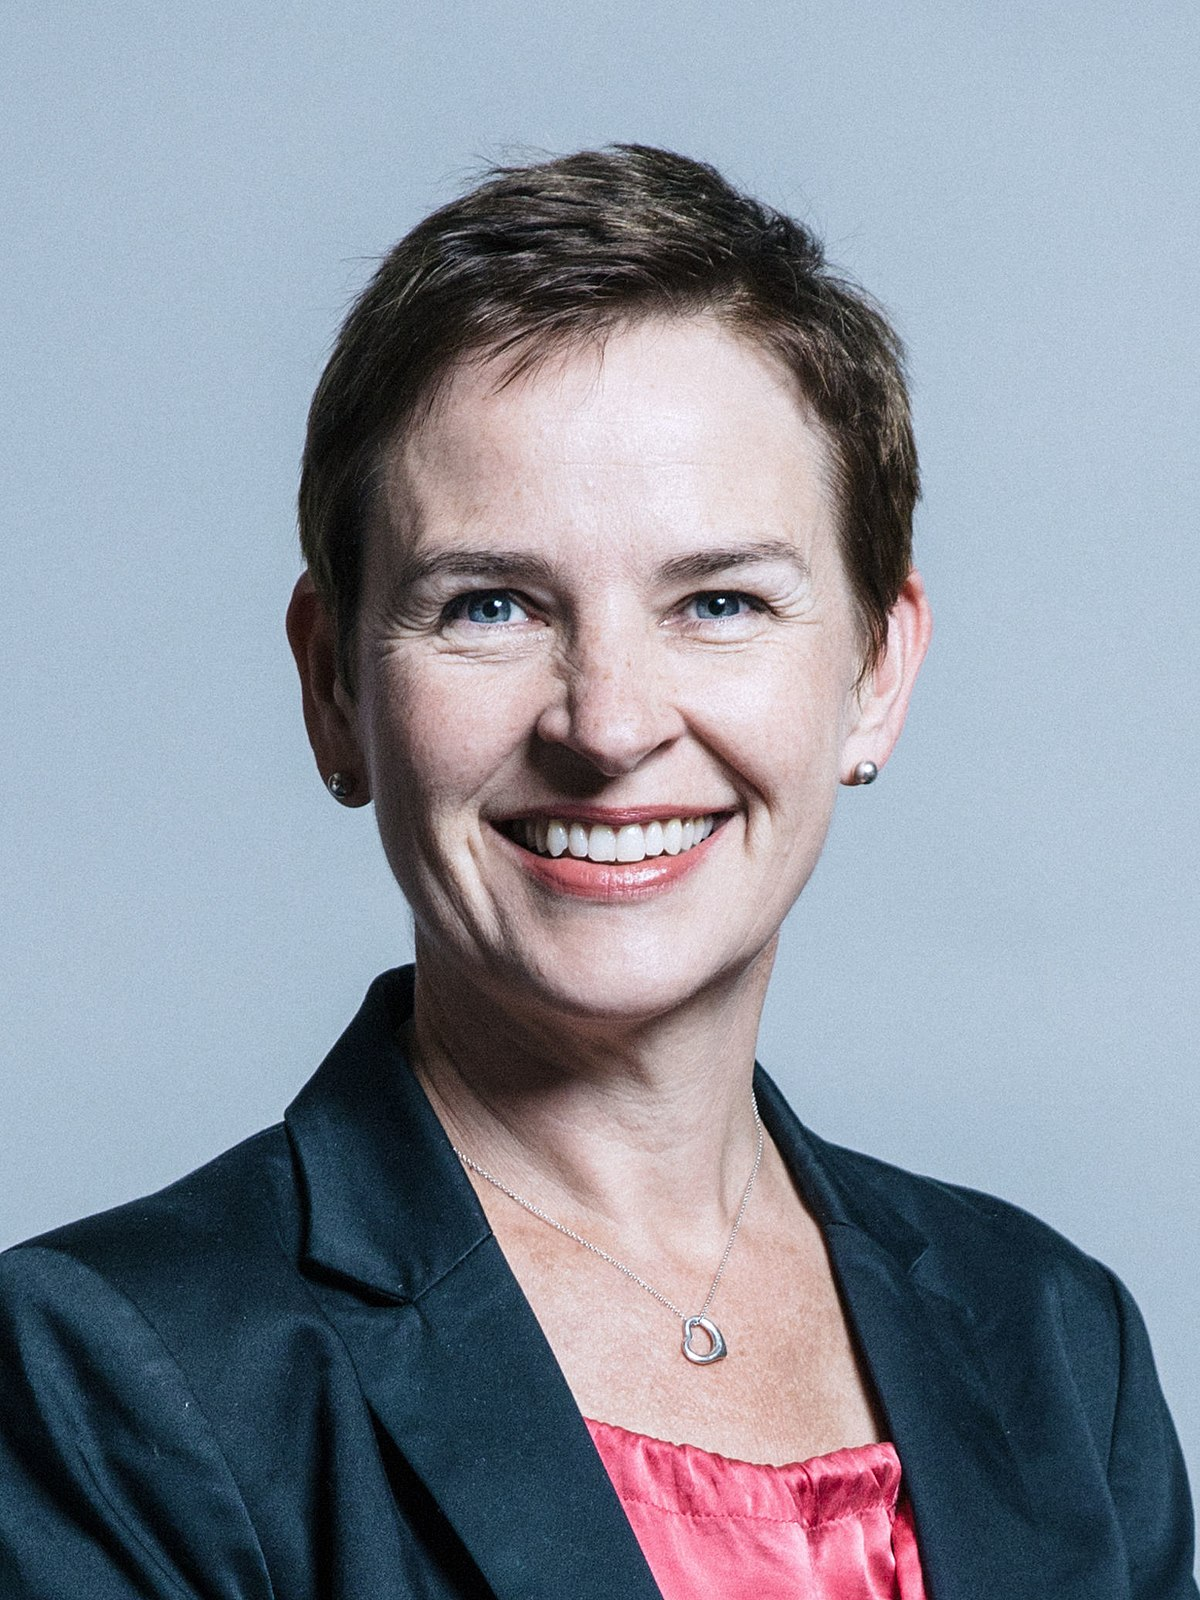 Mary Creagh - Wikipedia